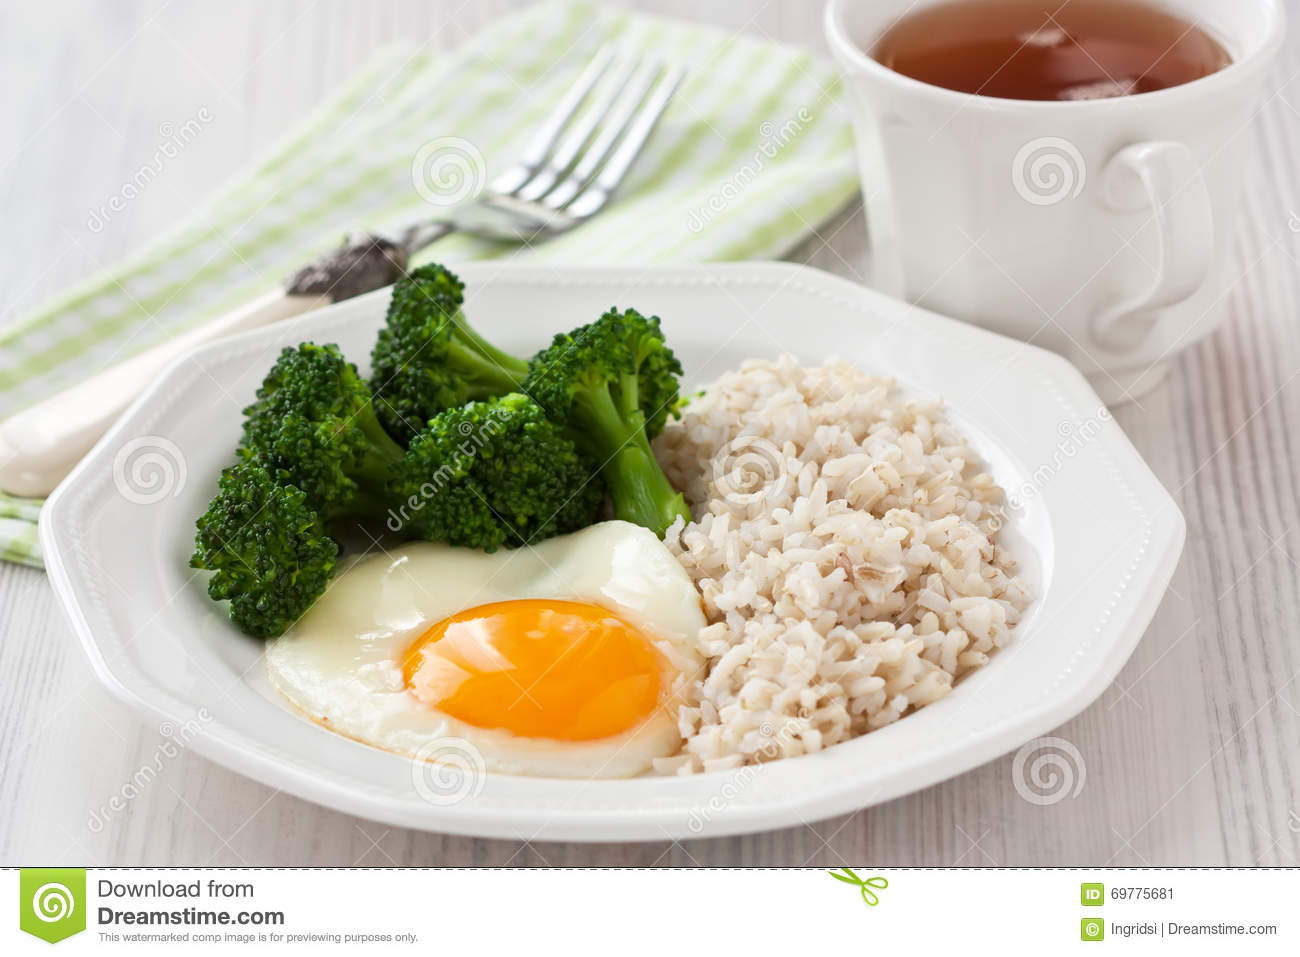 Eggs For Breakfast Healthy  Healthy egg breakfast stock image Image of natural